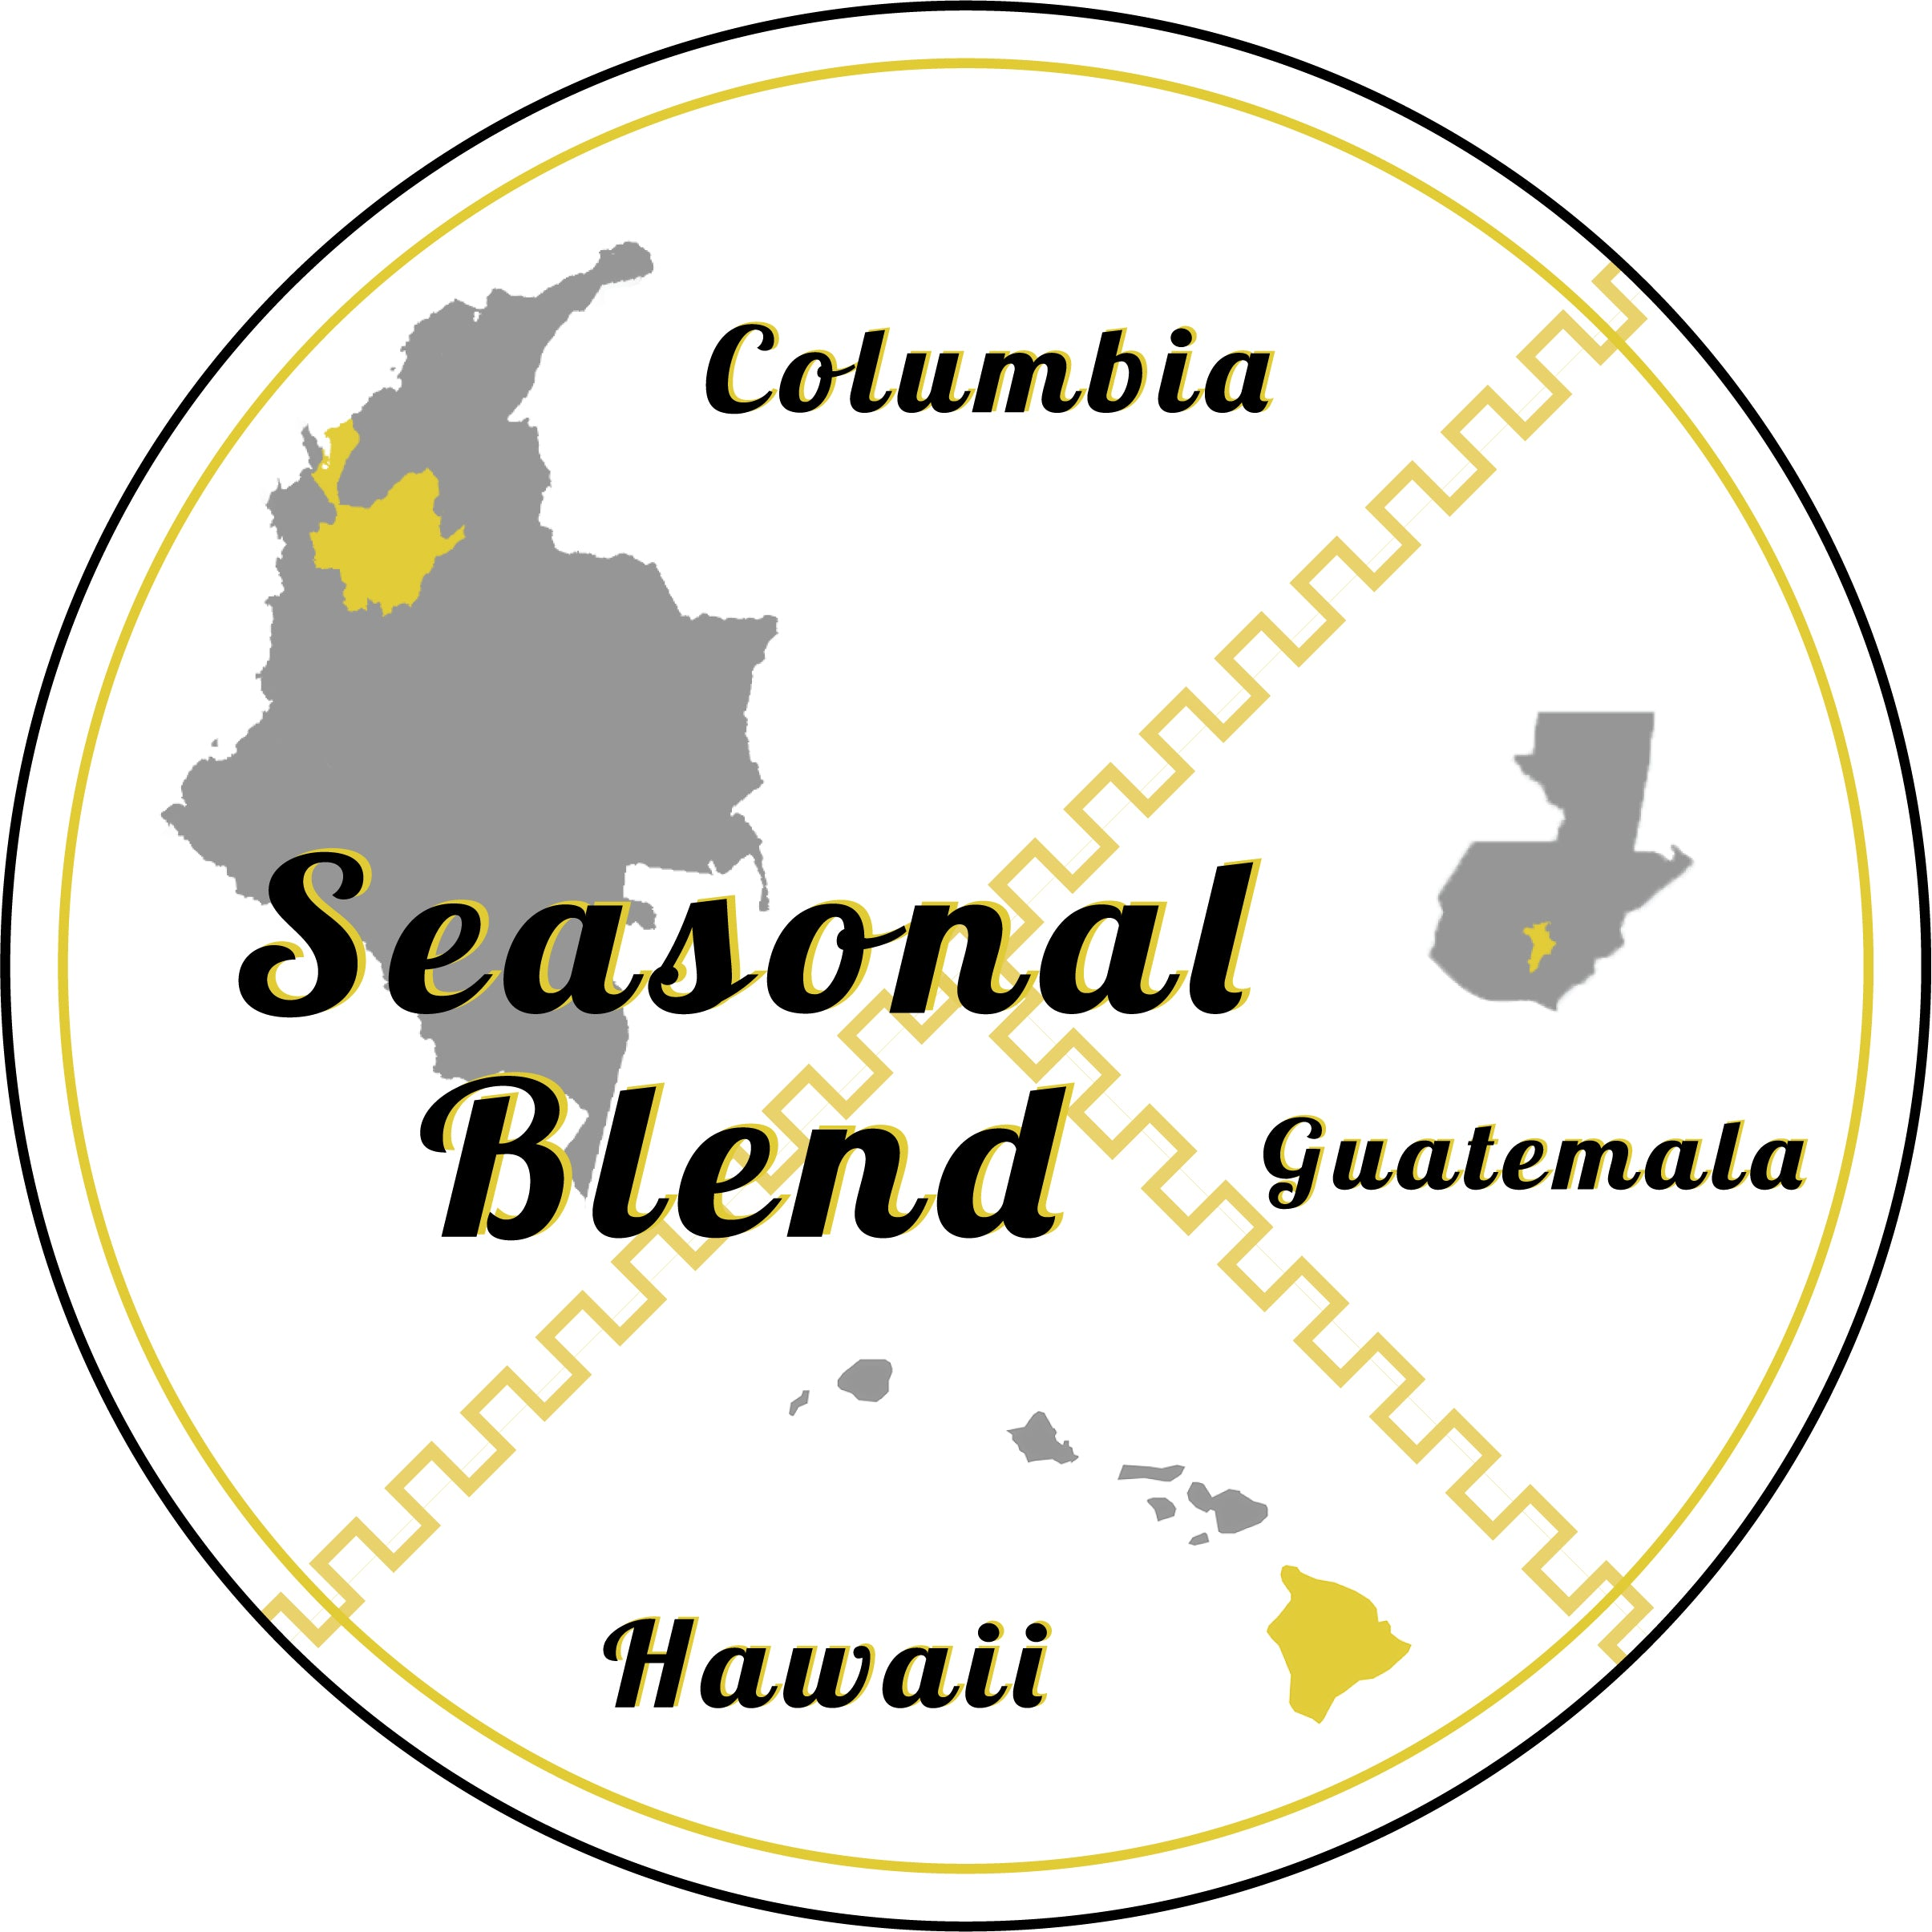 Goldilocks Seasonal Blend: Columbian, Guatemalan, and Kona